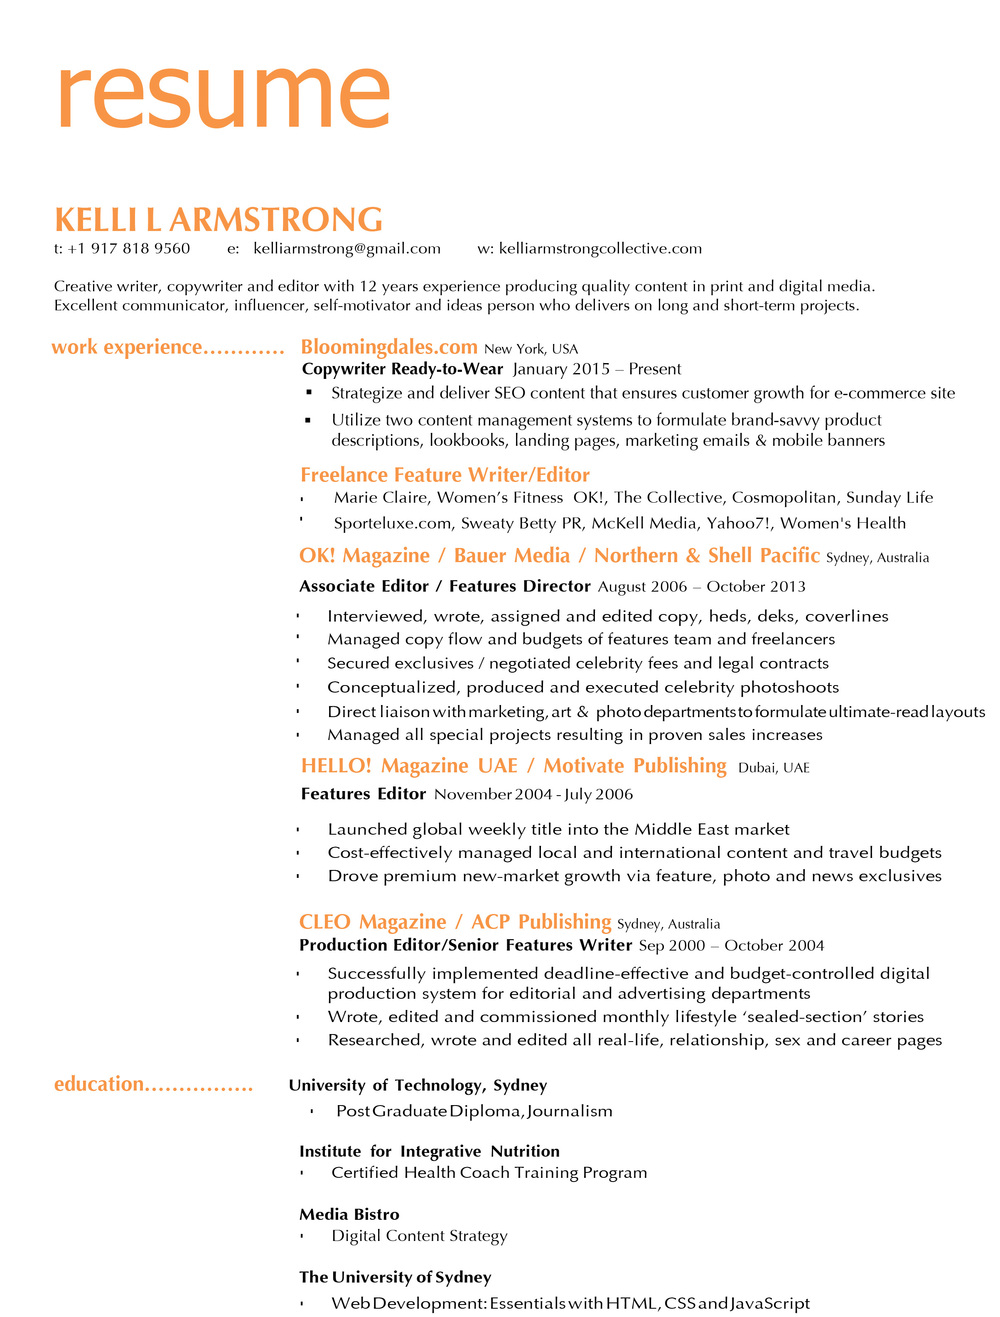 Resume Kelli Armstrong Collective